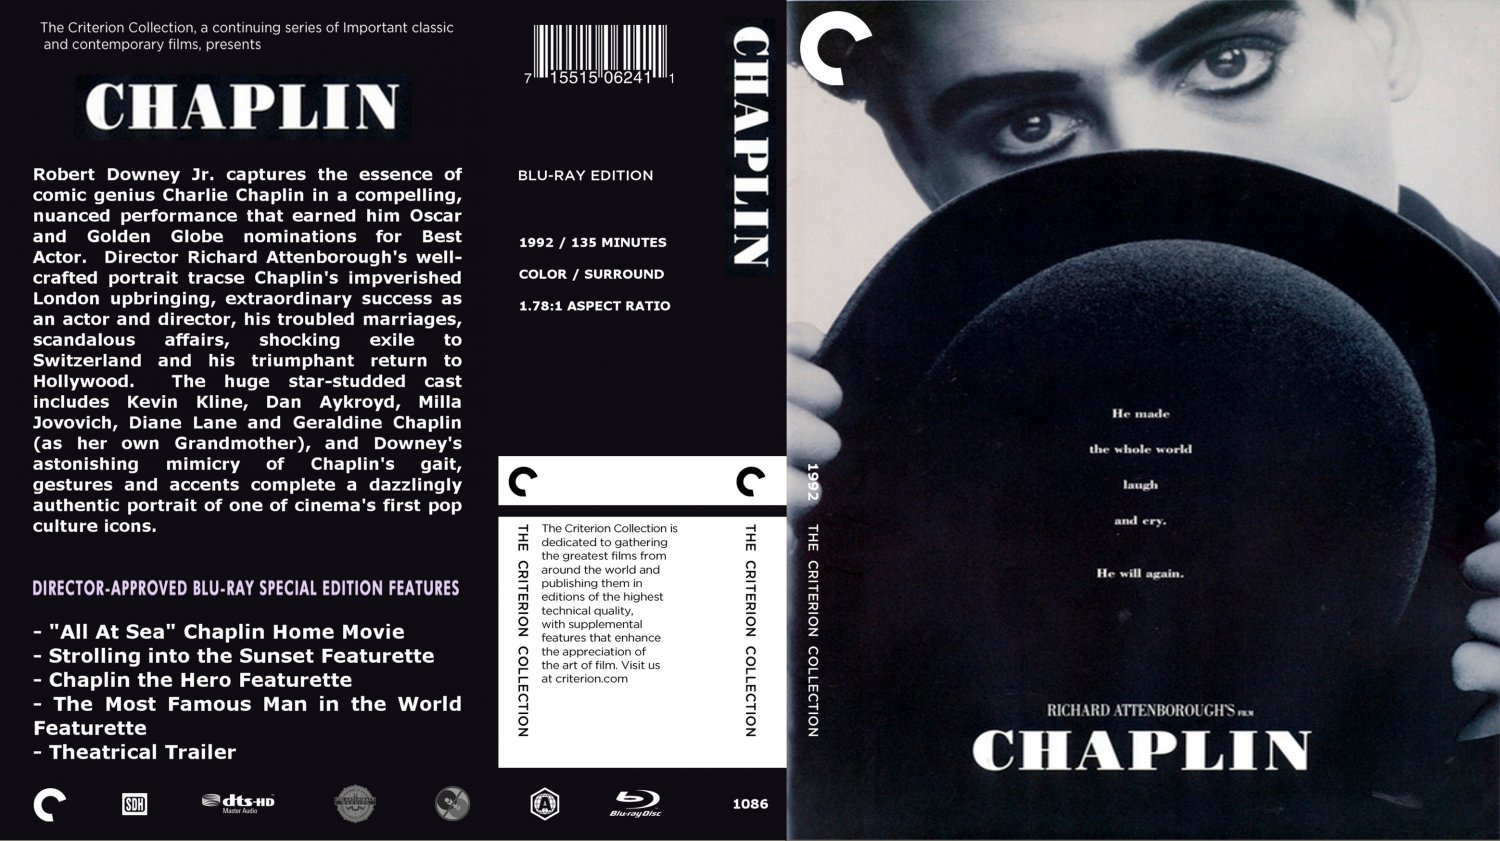 criterion essays Criterion-group.